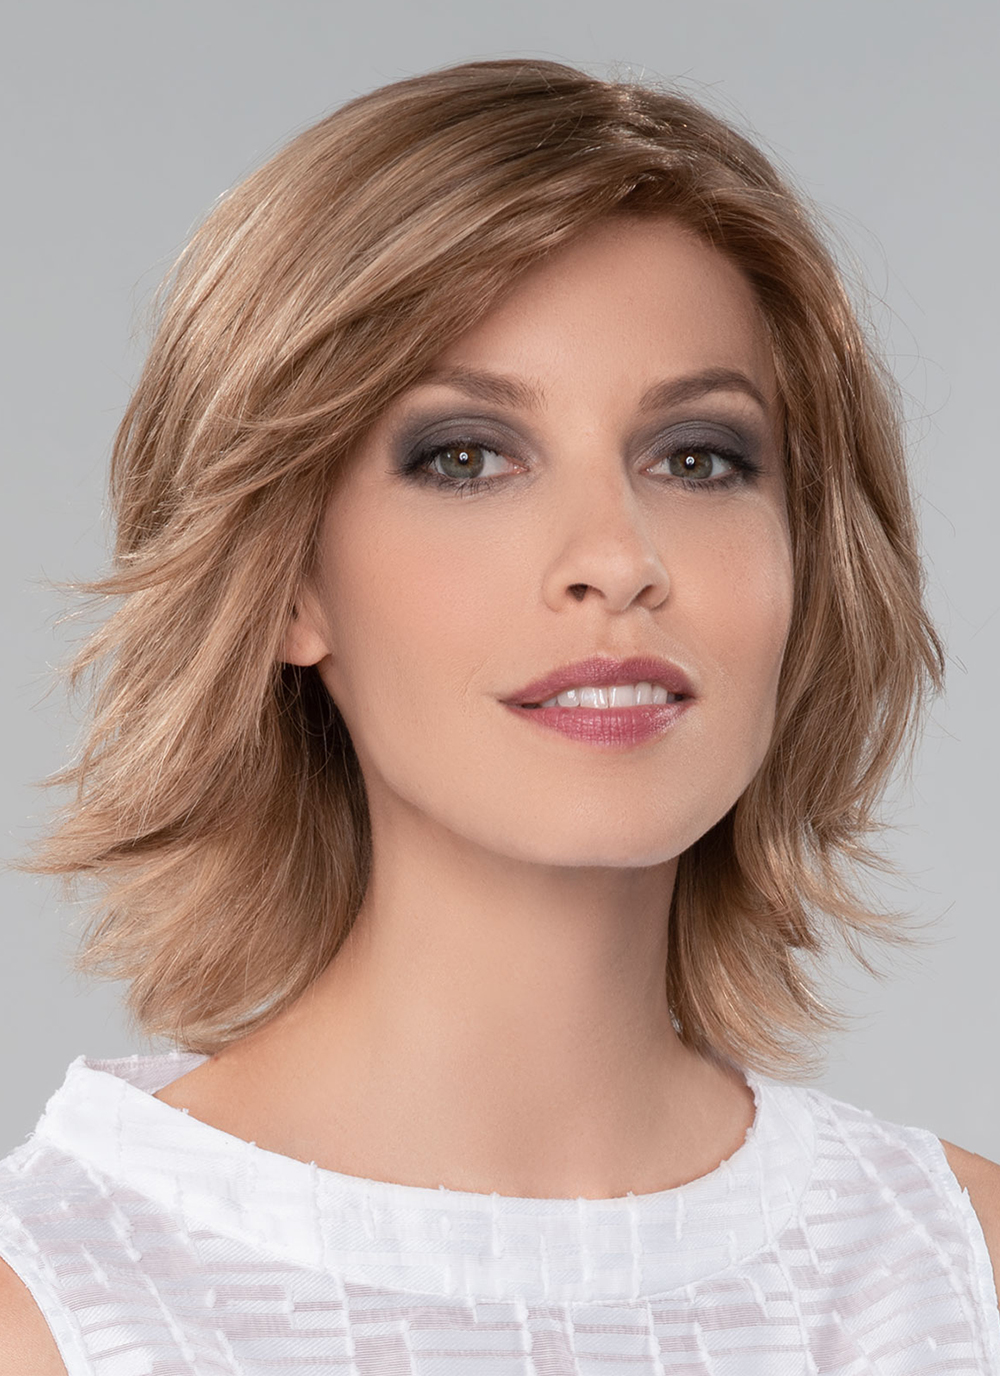 Sole | A hand-tied monofilament top, a beautiful lace front hairline gives the appearance of a natural look and to offer styling options.